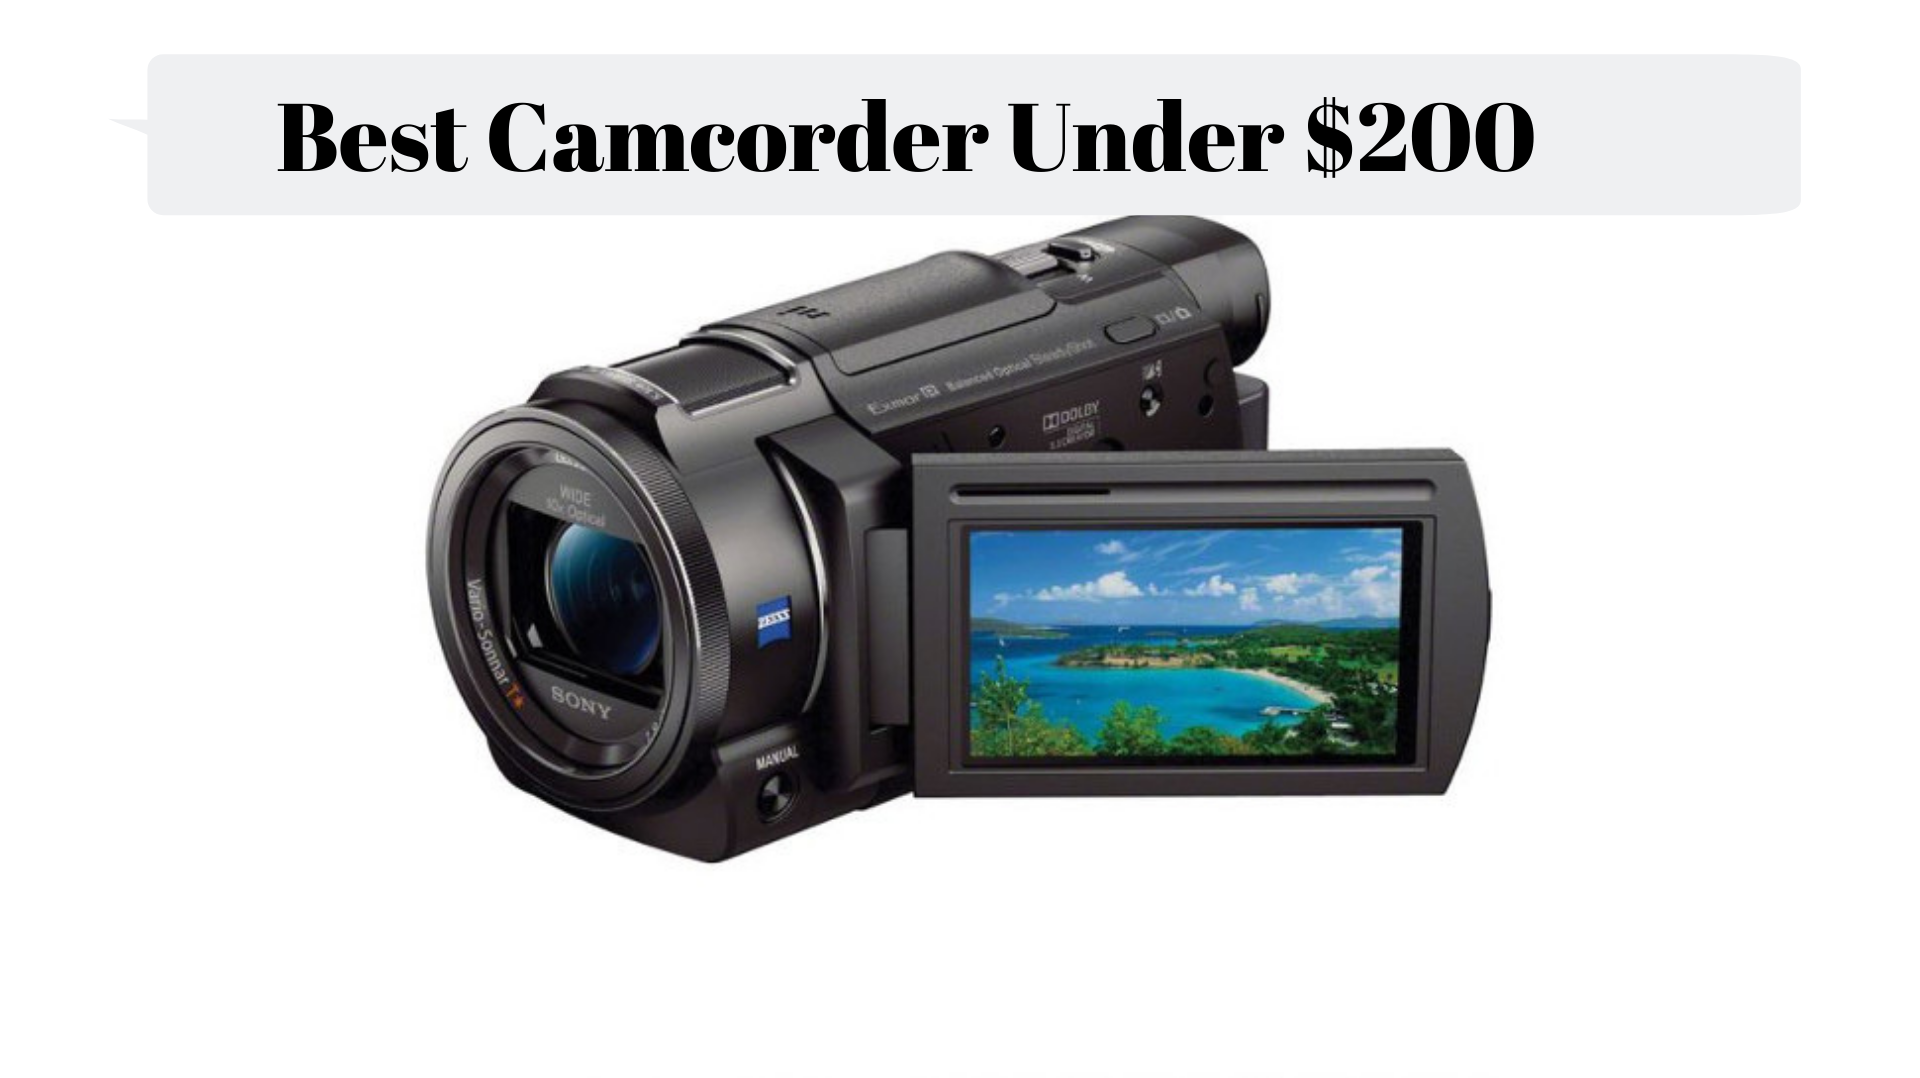 Best Camcorder Under 300 Dollar